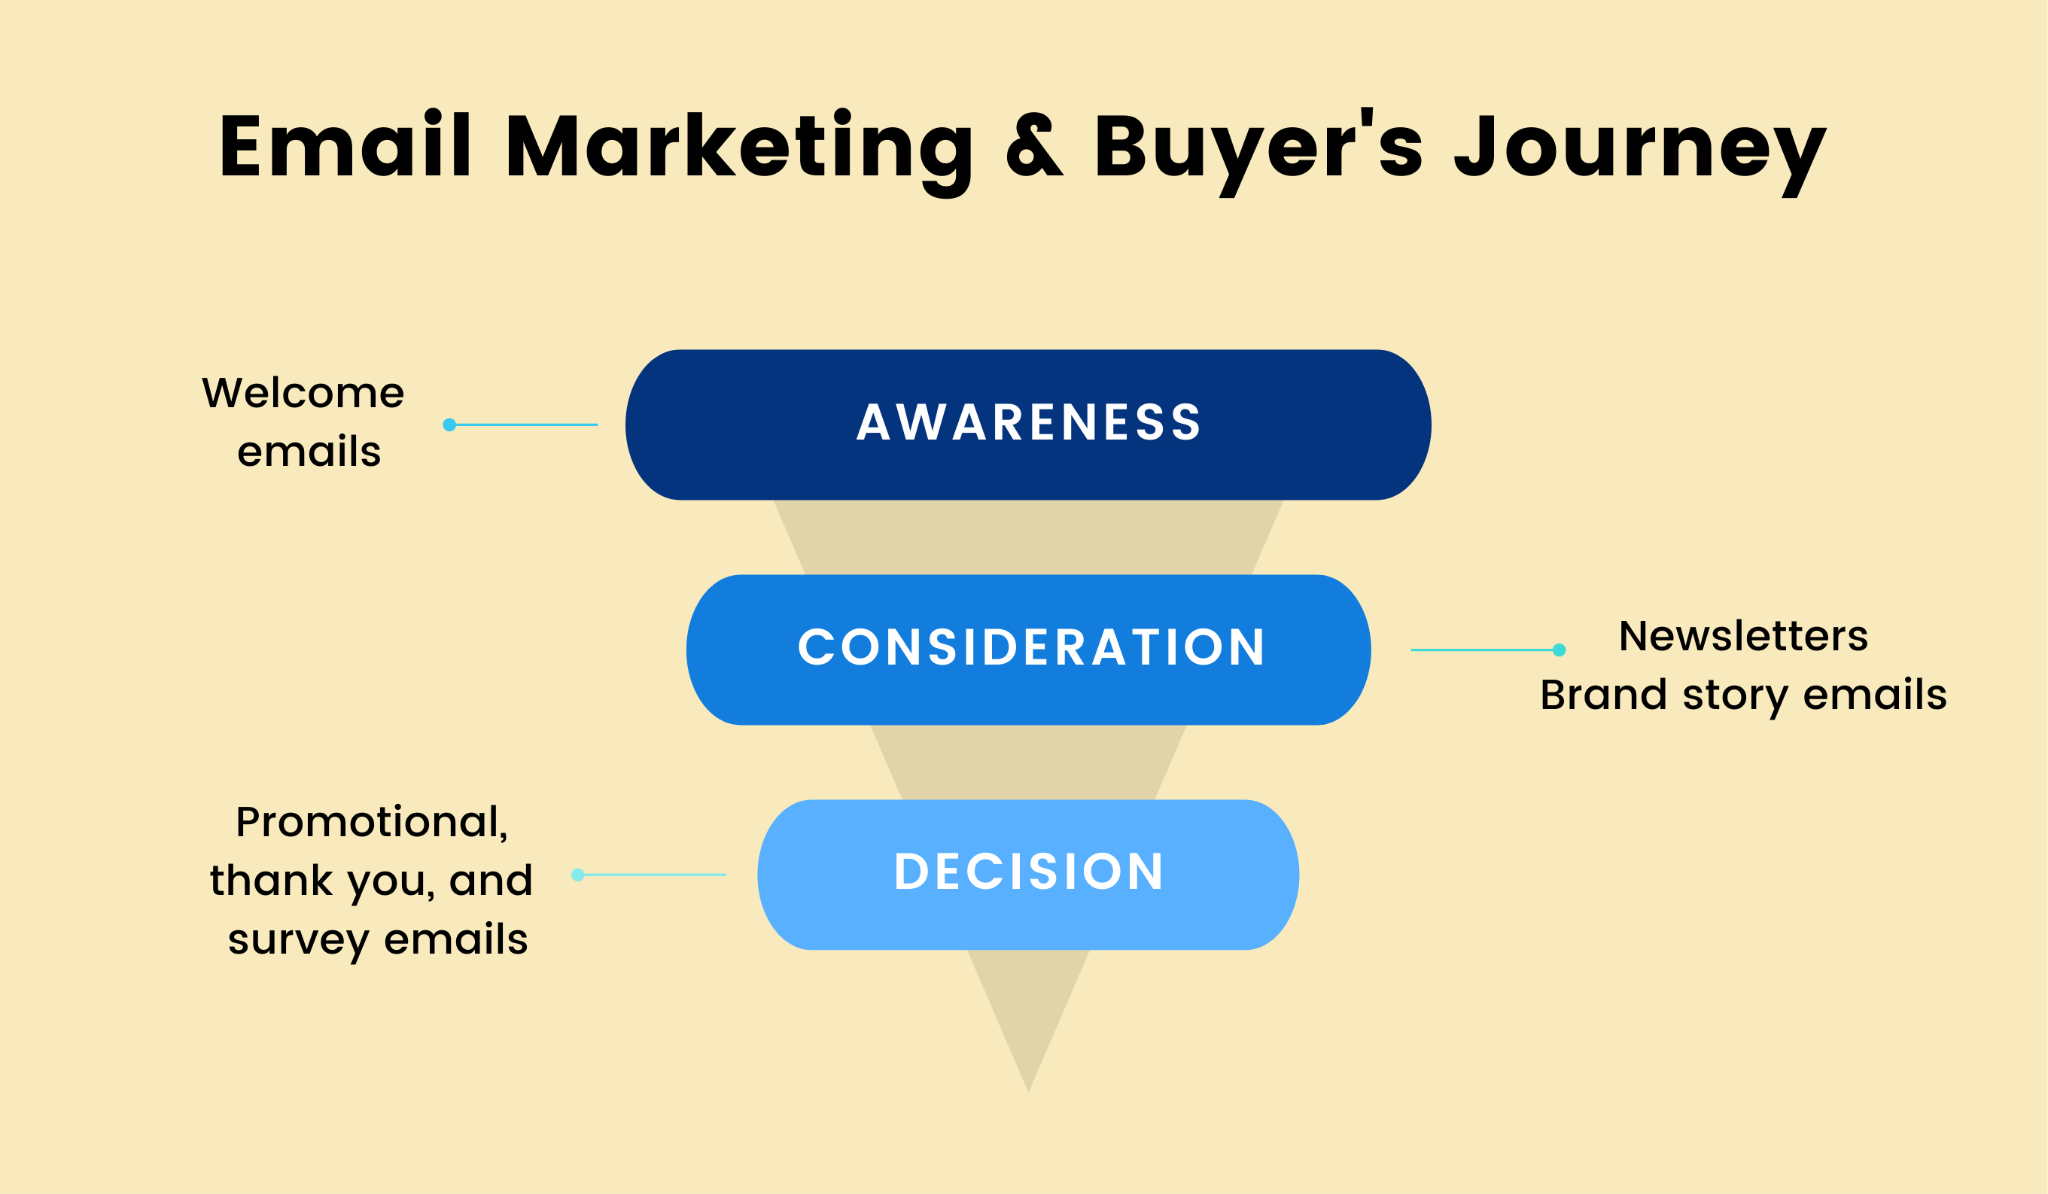 Different emails for different stages of the buyer's journey